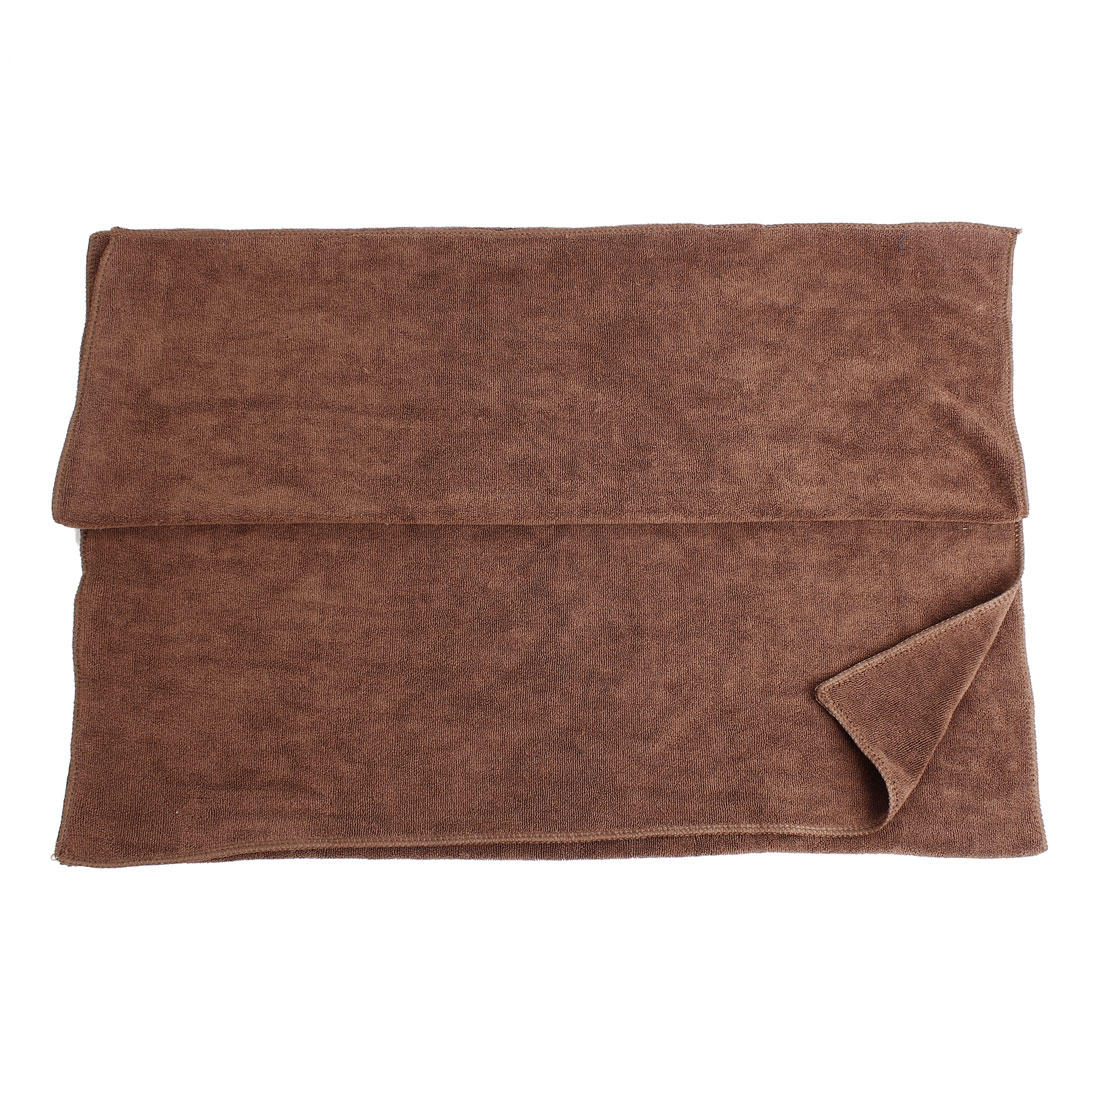 160cm x 60cm Microfiber Water Absorption Cleaning Cloth Towel Brown for Car Vehicle